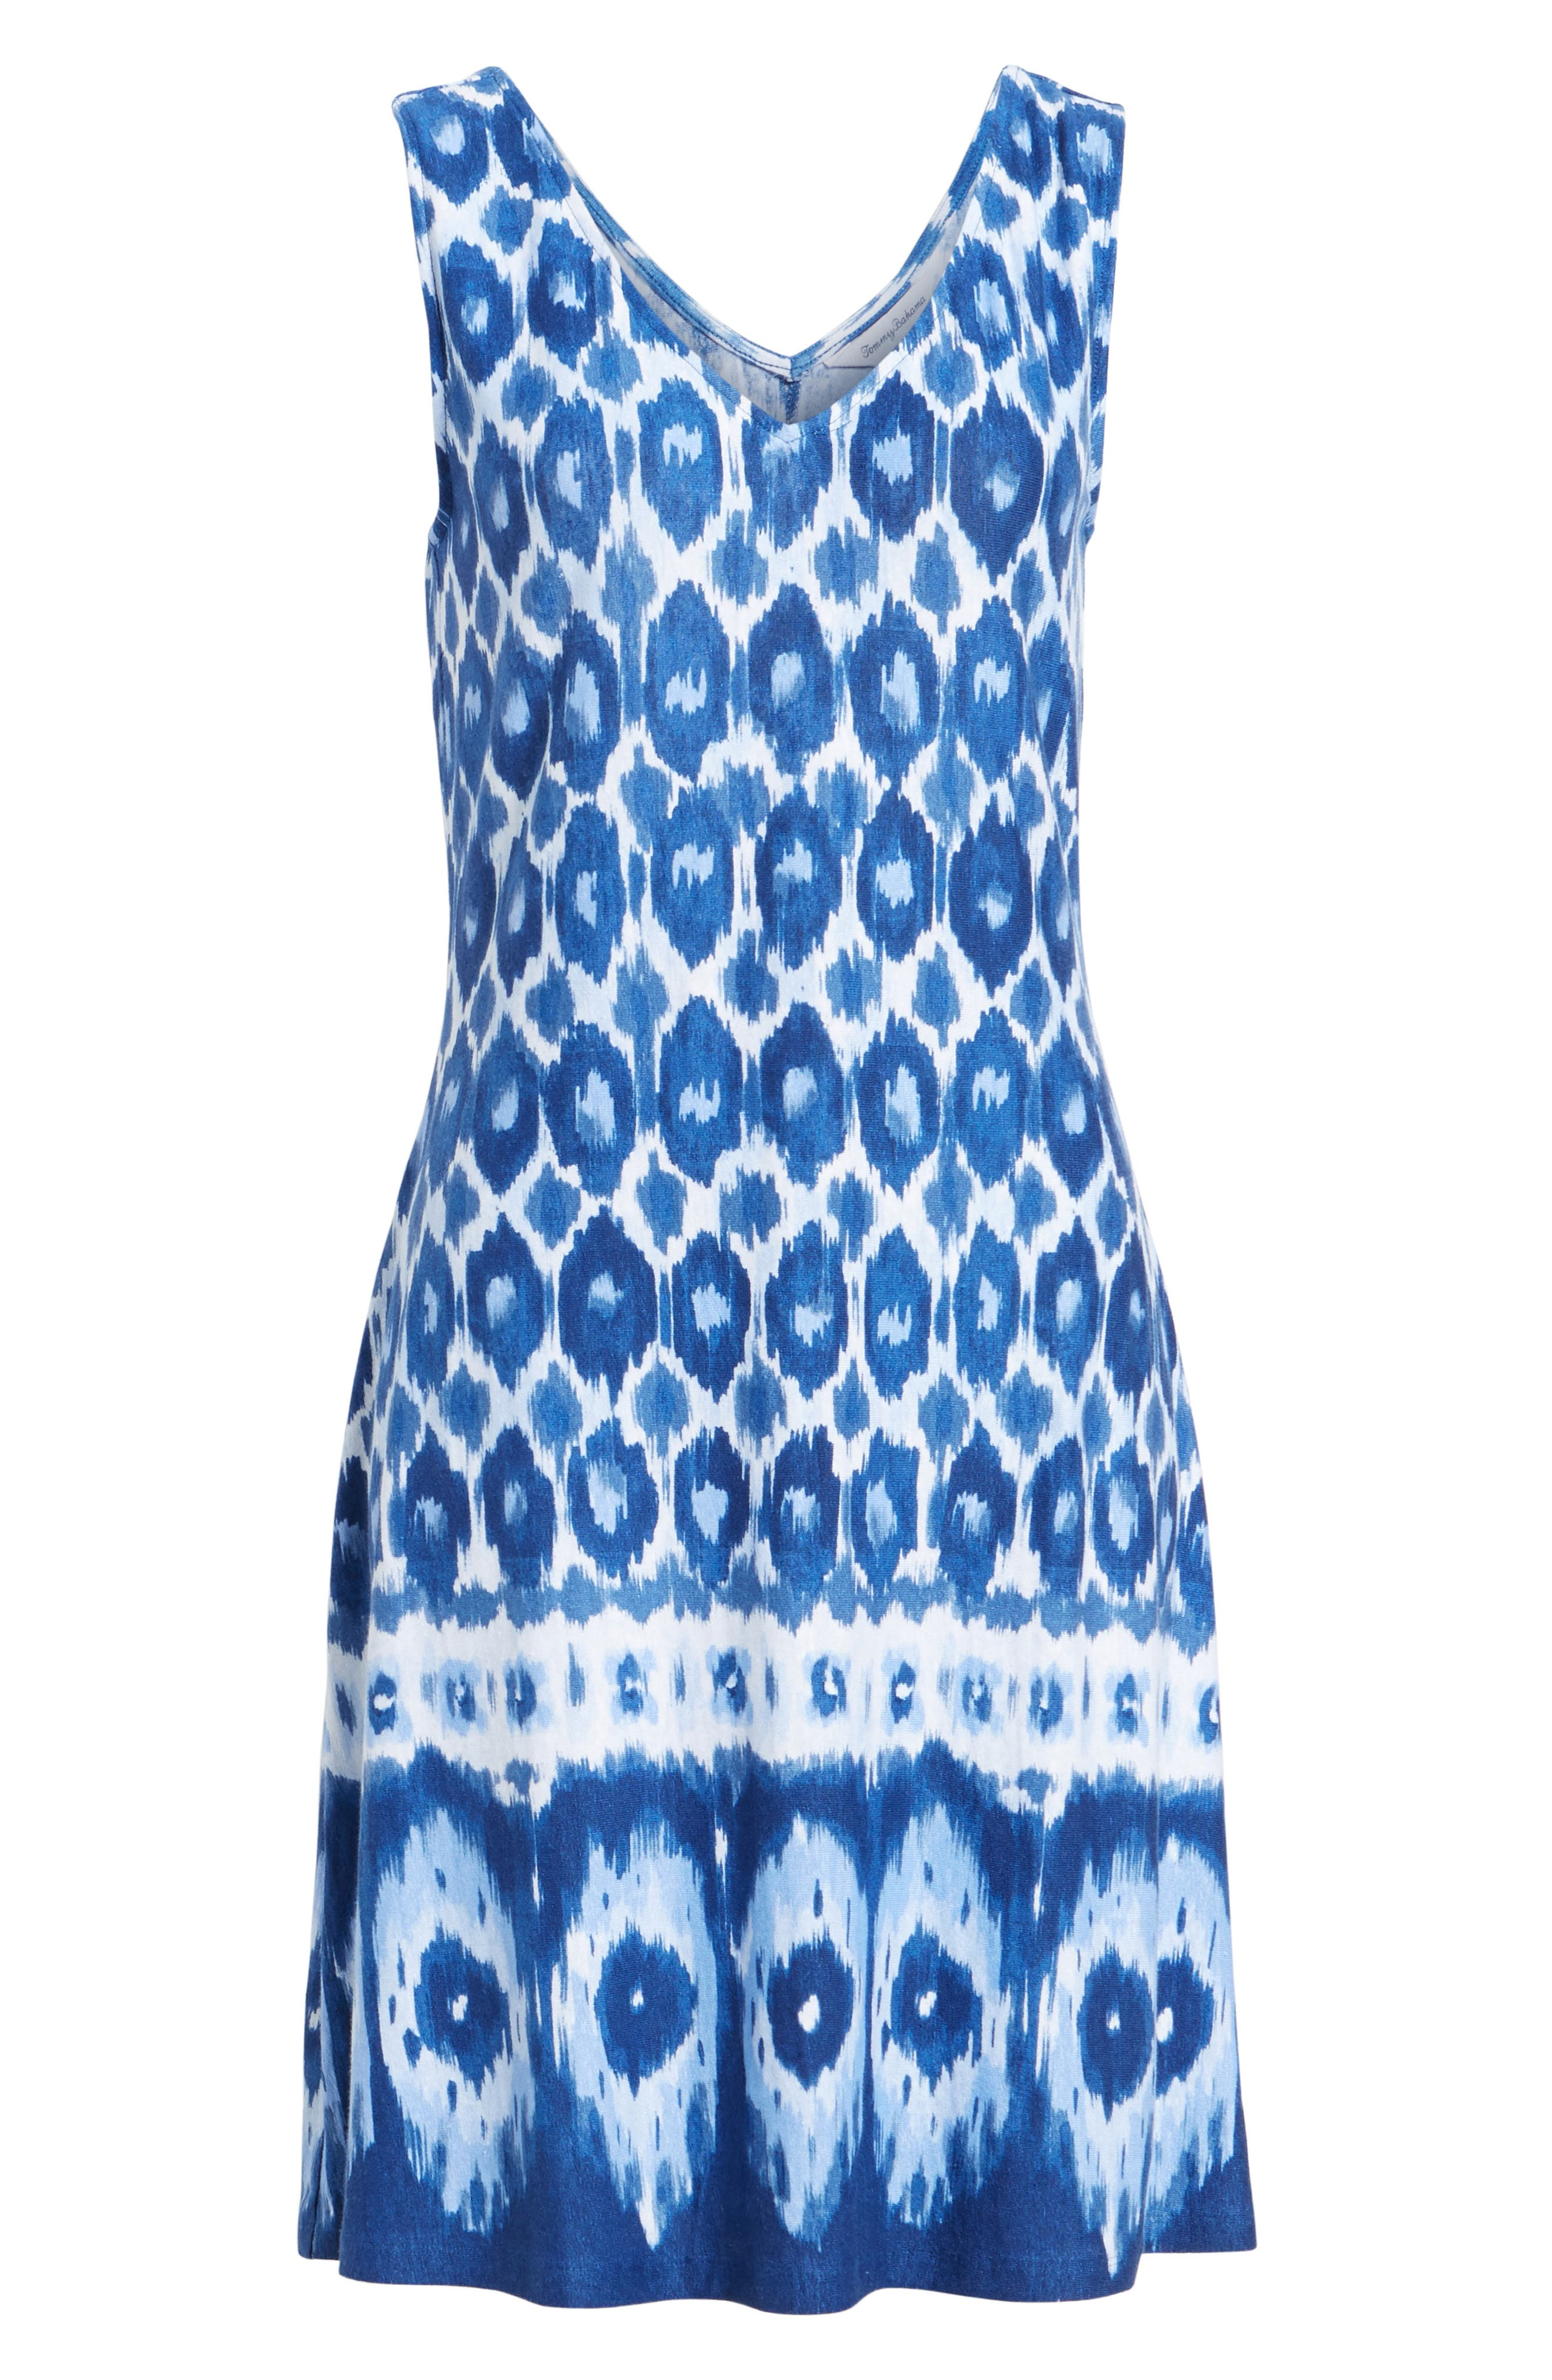 Innercoastal Ikat Sleeveless Dress,                             Alternate thumbnail 6, color,                             Kingdom Blue